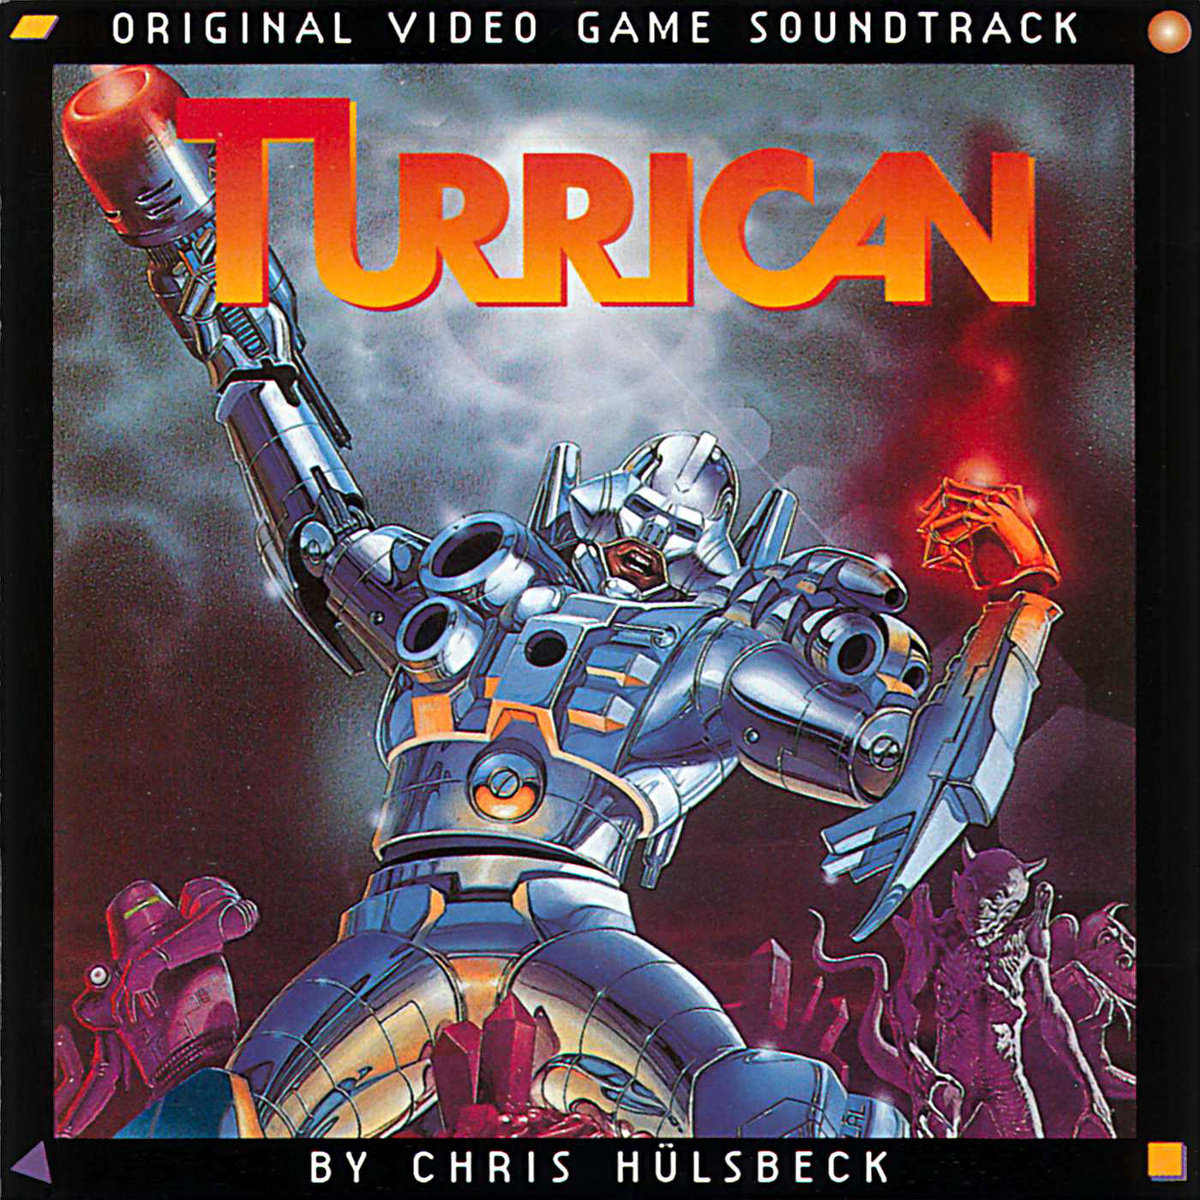 Turrican_Soundtrack_cover1200x1200.jpg